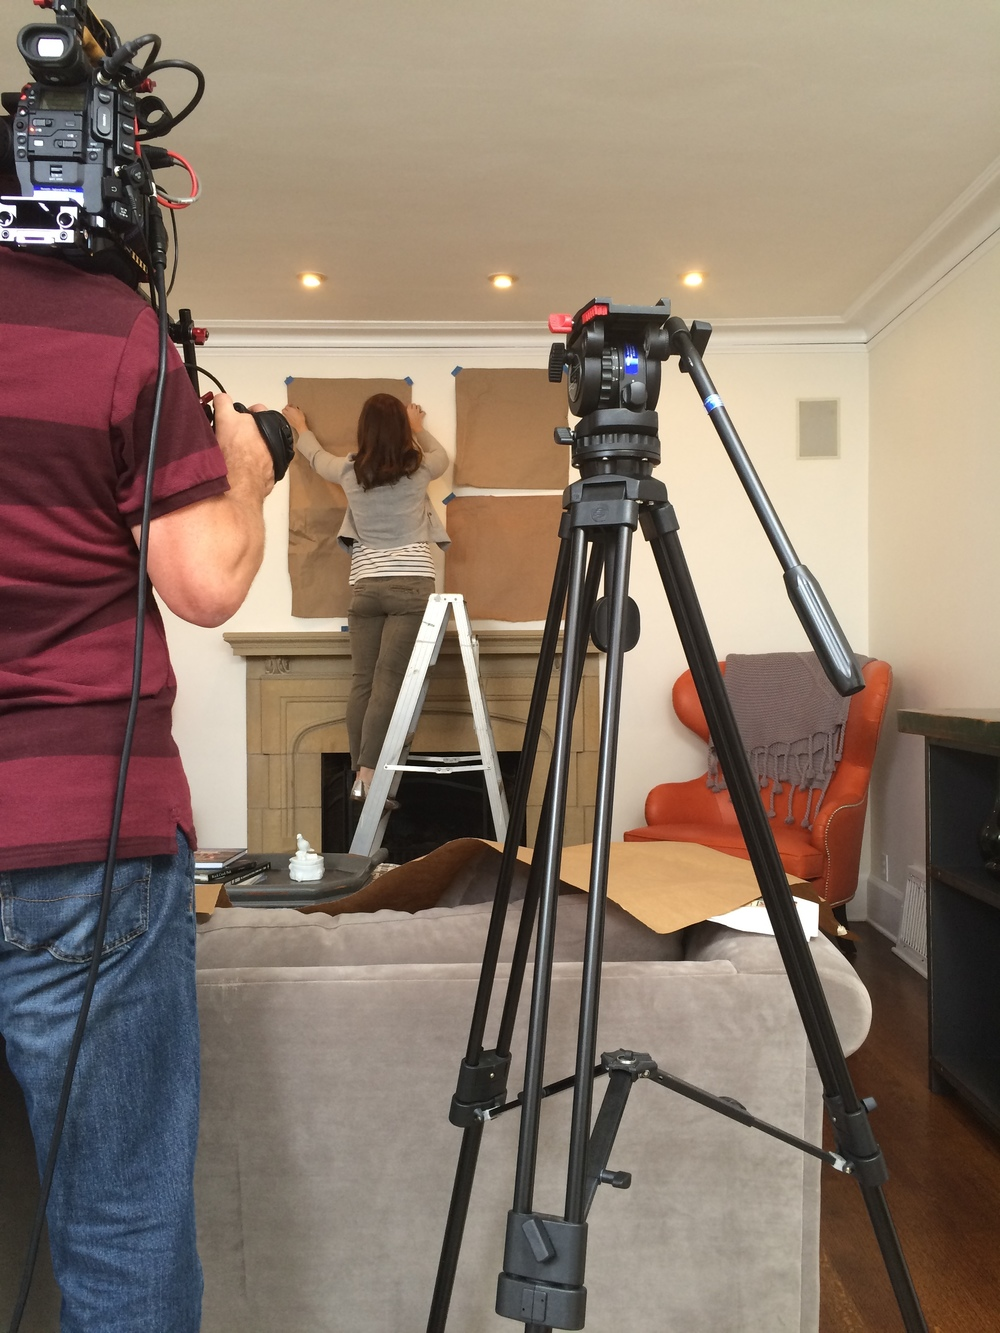 It's ridiculously nerve-wracking to be on a ladder and be filmed at the same time for some reason.